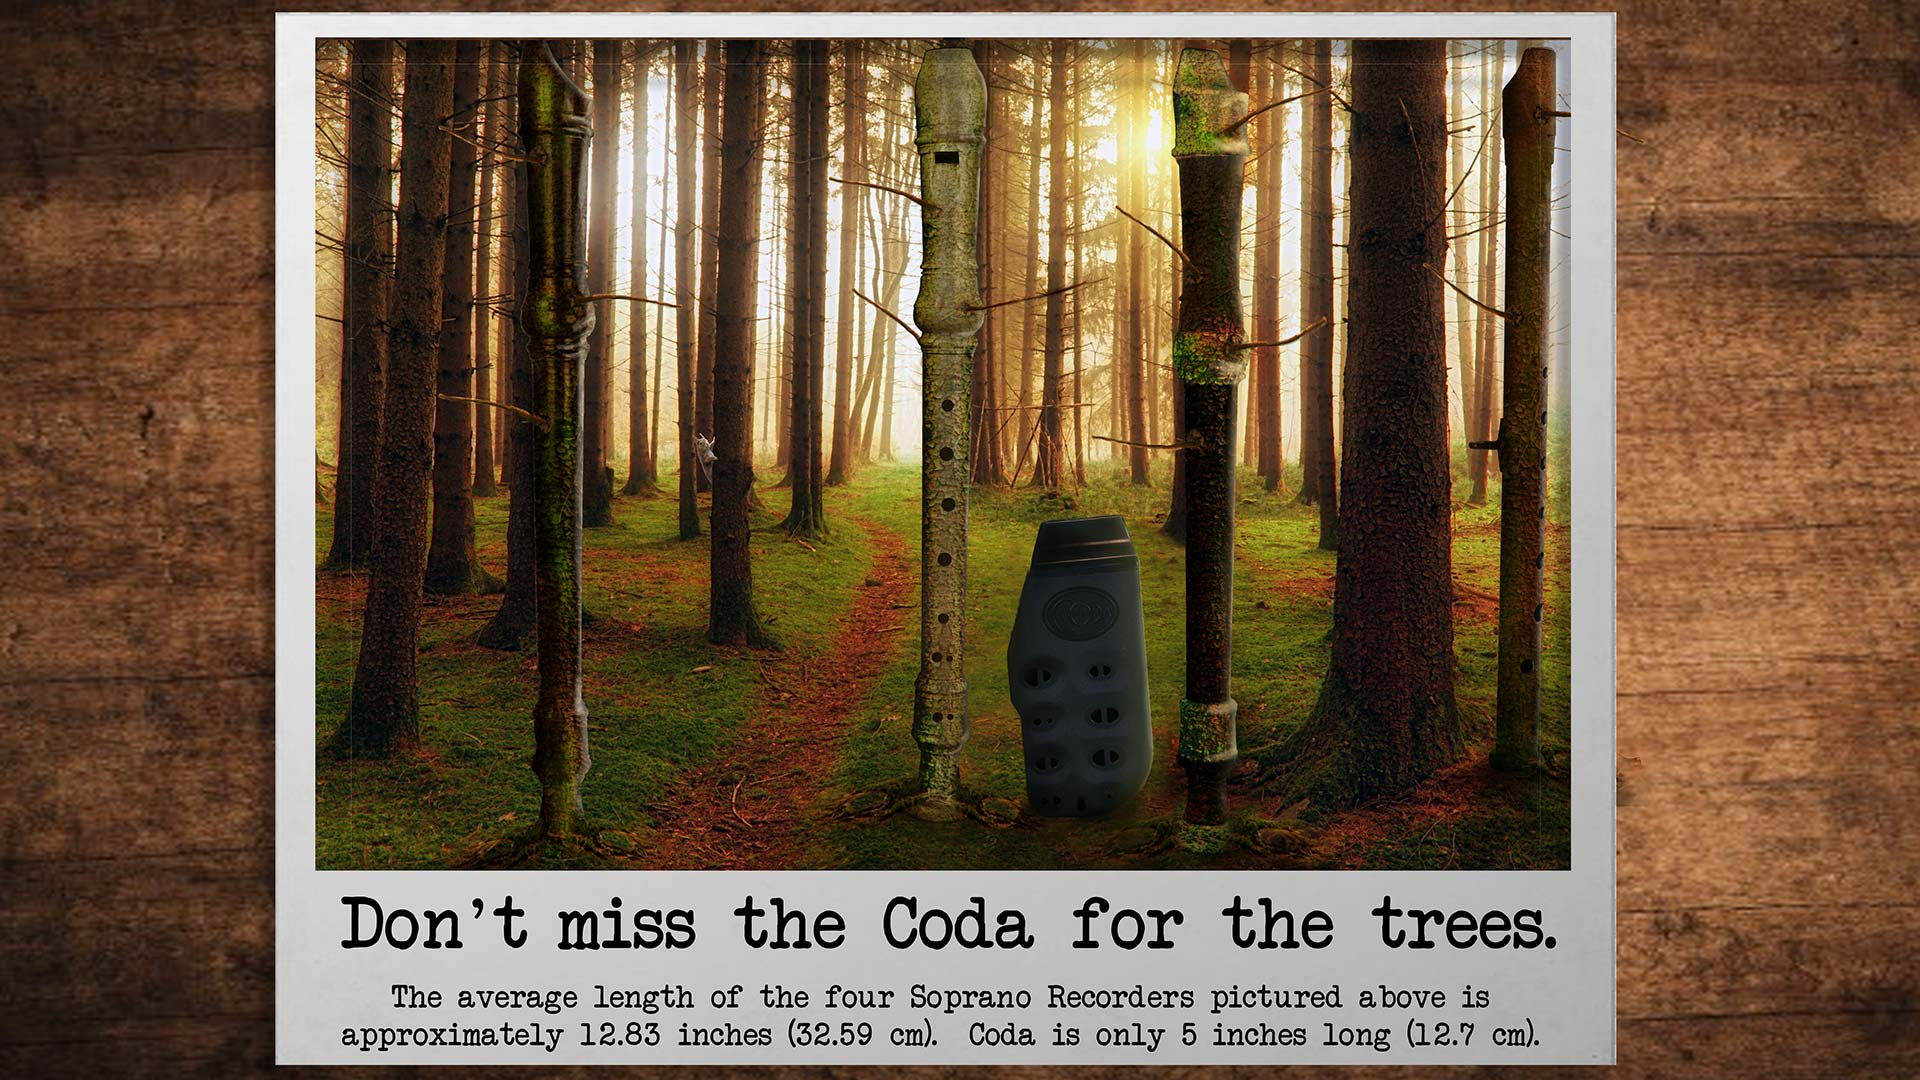 Don't miss the Coda for the trees!